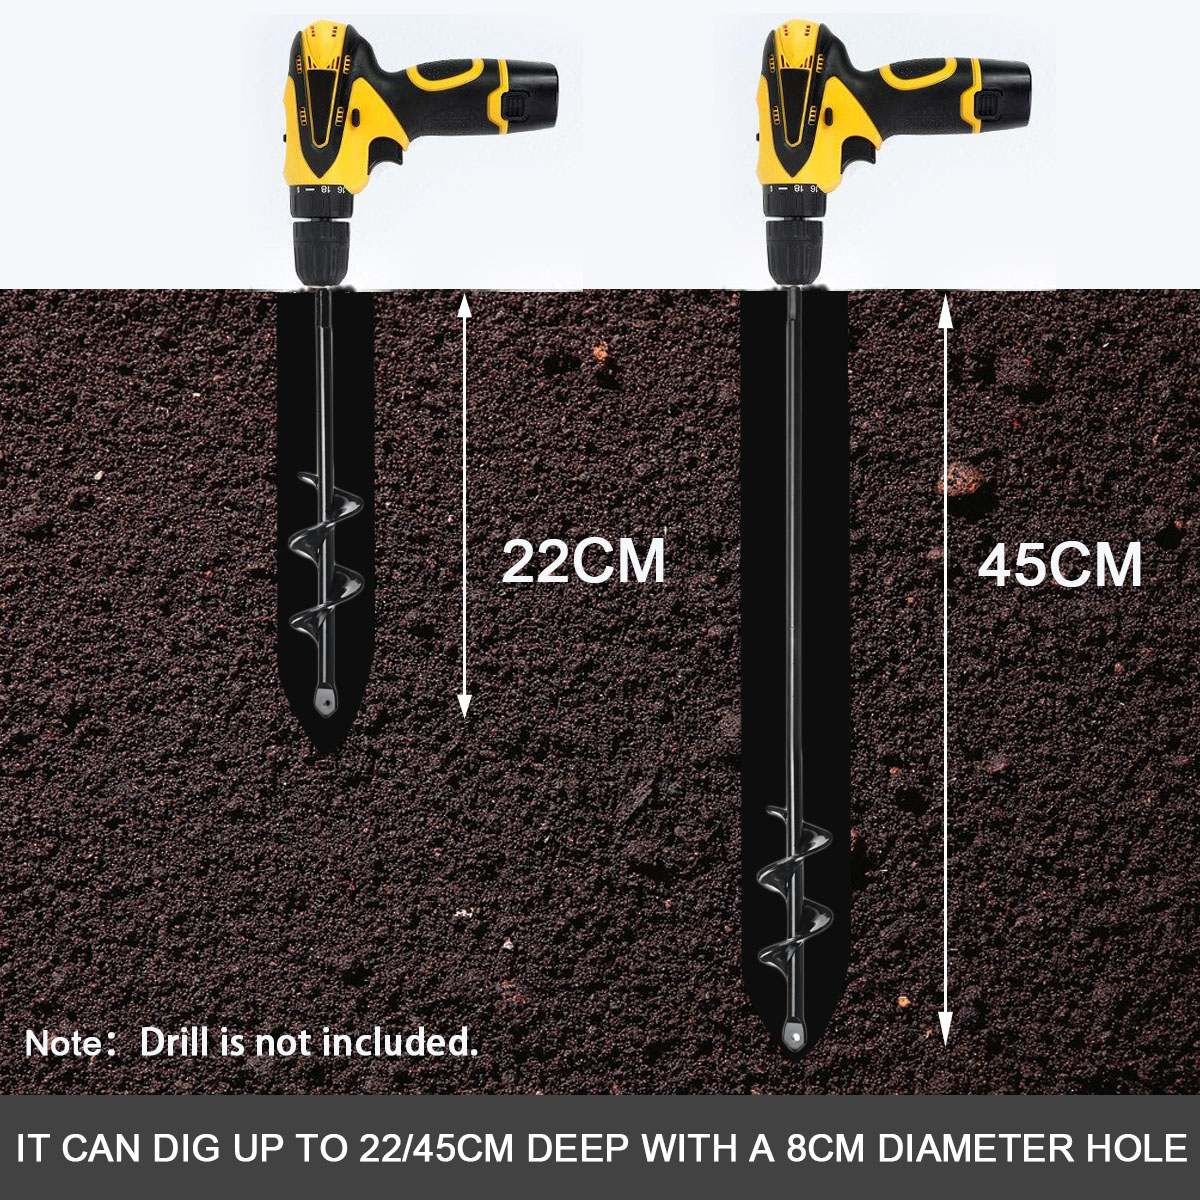 Shower Faucet - Earth Auger Hole Digger Tool Garden Planting Machine Drill Bit Fence Borer Post Hole Digger